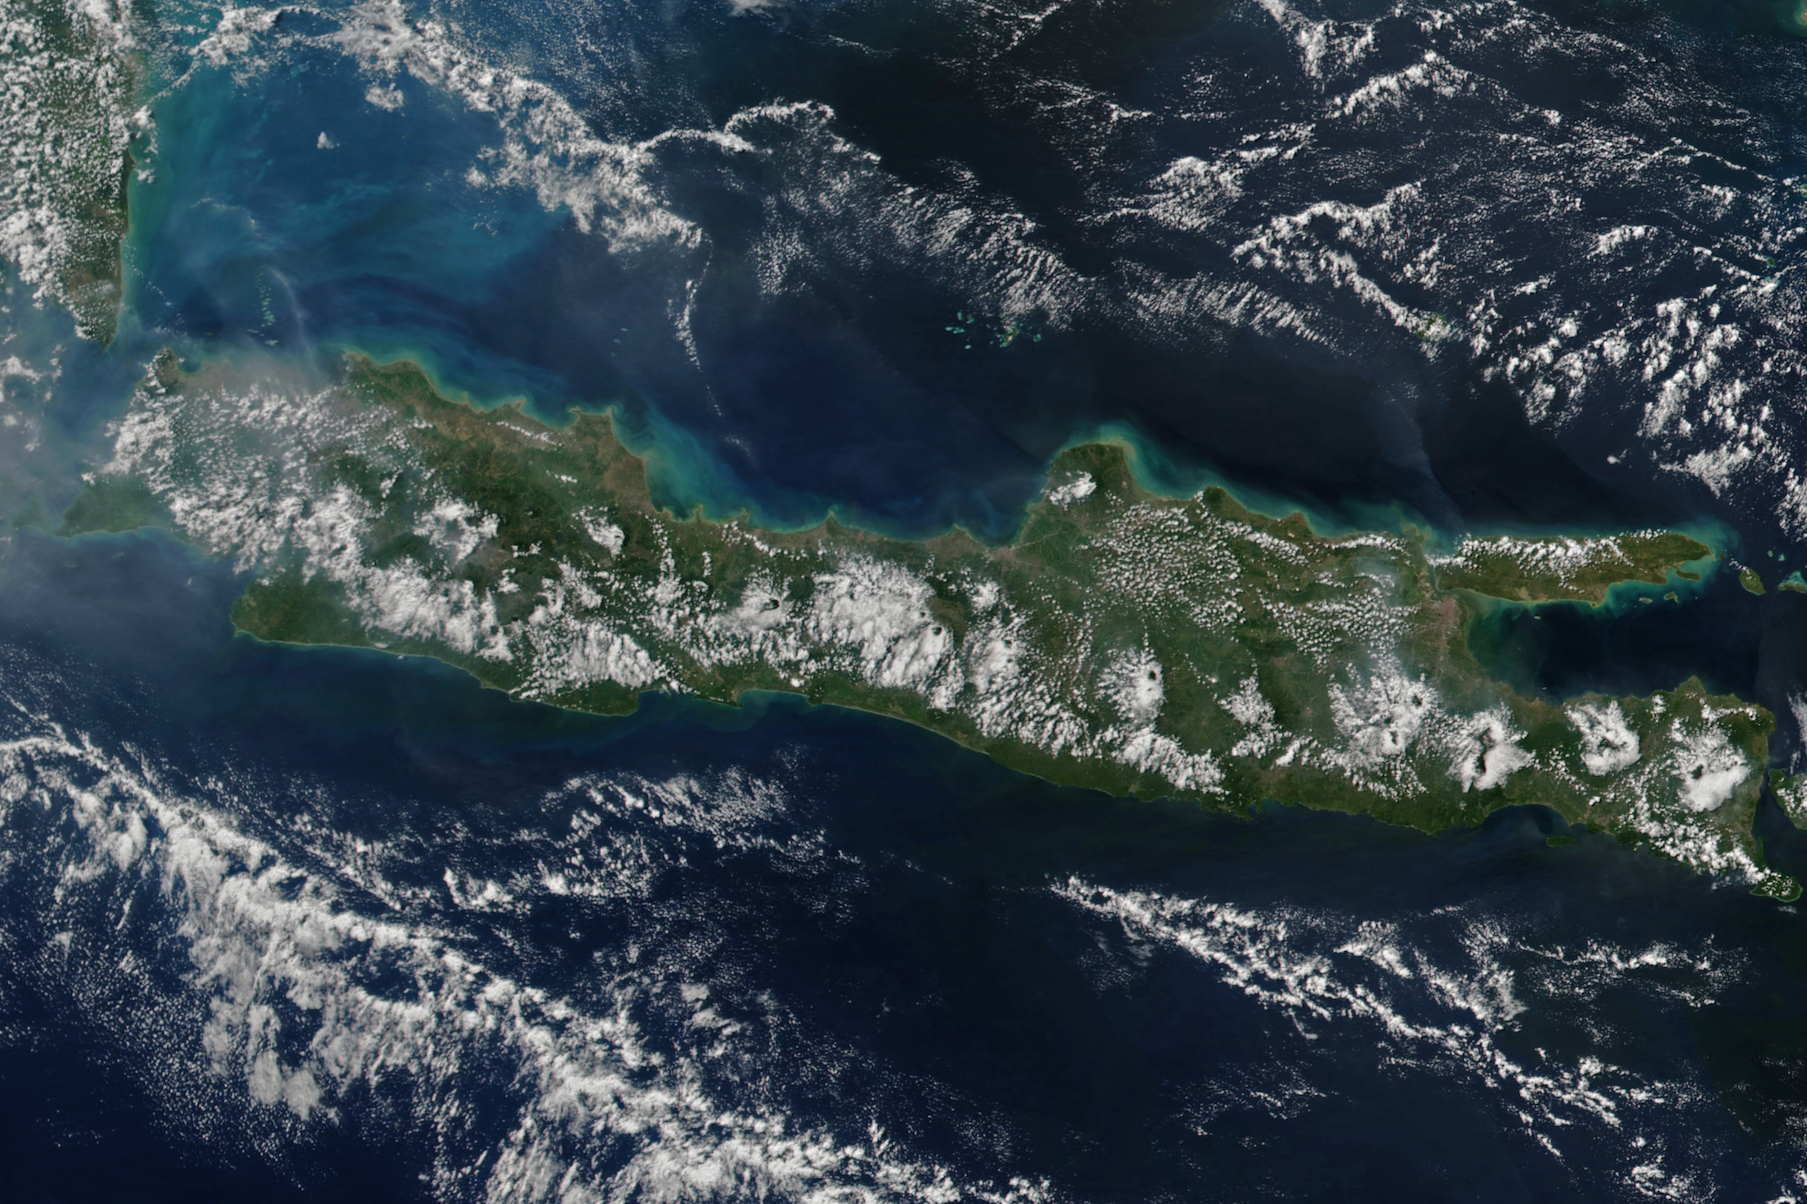 Today's Image of the Day comes thanks to the NASA Earth Observatory and features an overhead look at the Indonesian island of Java.